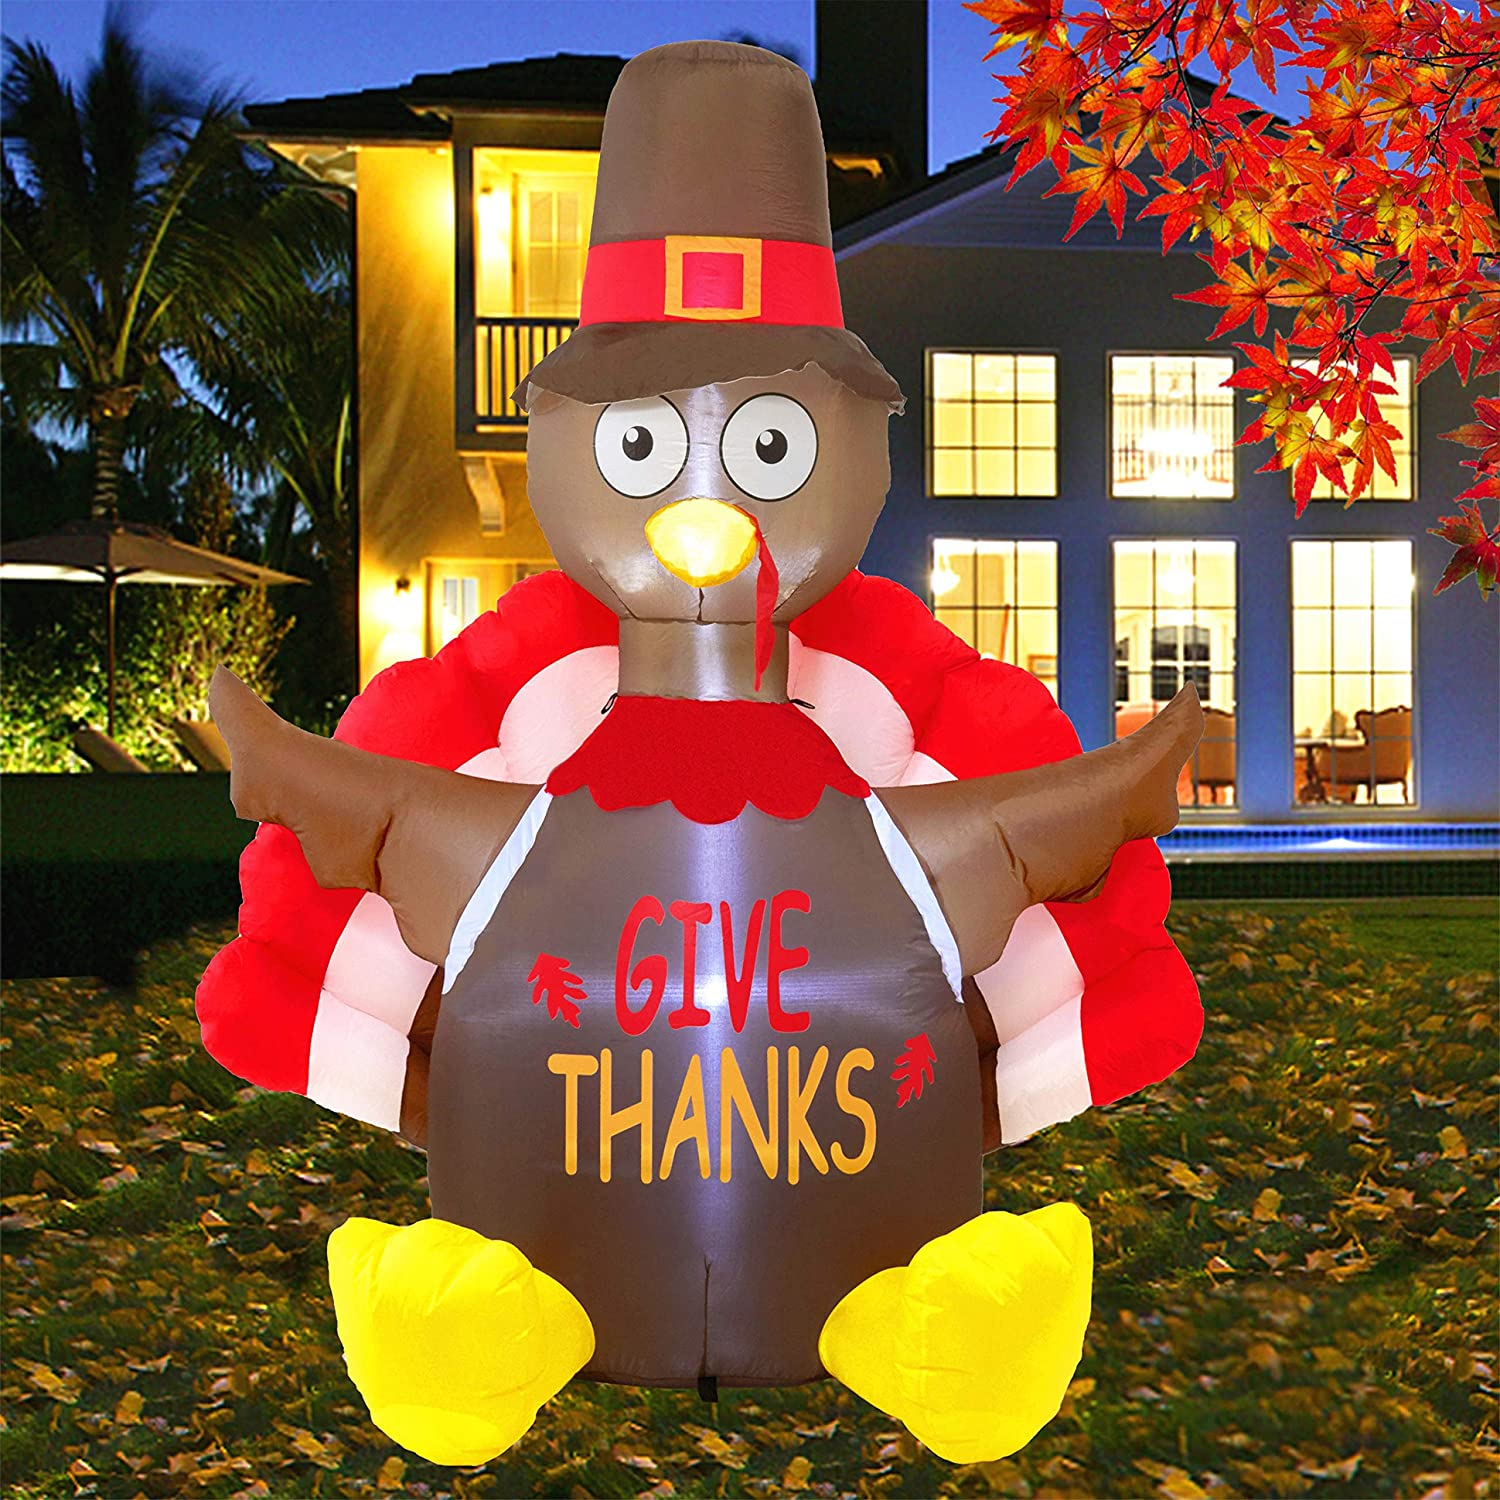 Thanksgiving Inflatables with LED Lights Yard Lawn Decor Display Autumn Fall Outdoor Decor 6FT Blow up Turkey Happy Thanksgiving Twinkle Star Thanksgiving Decorations Inflatable Lighted Turkey